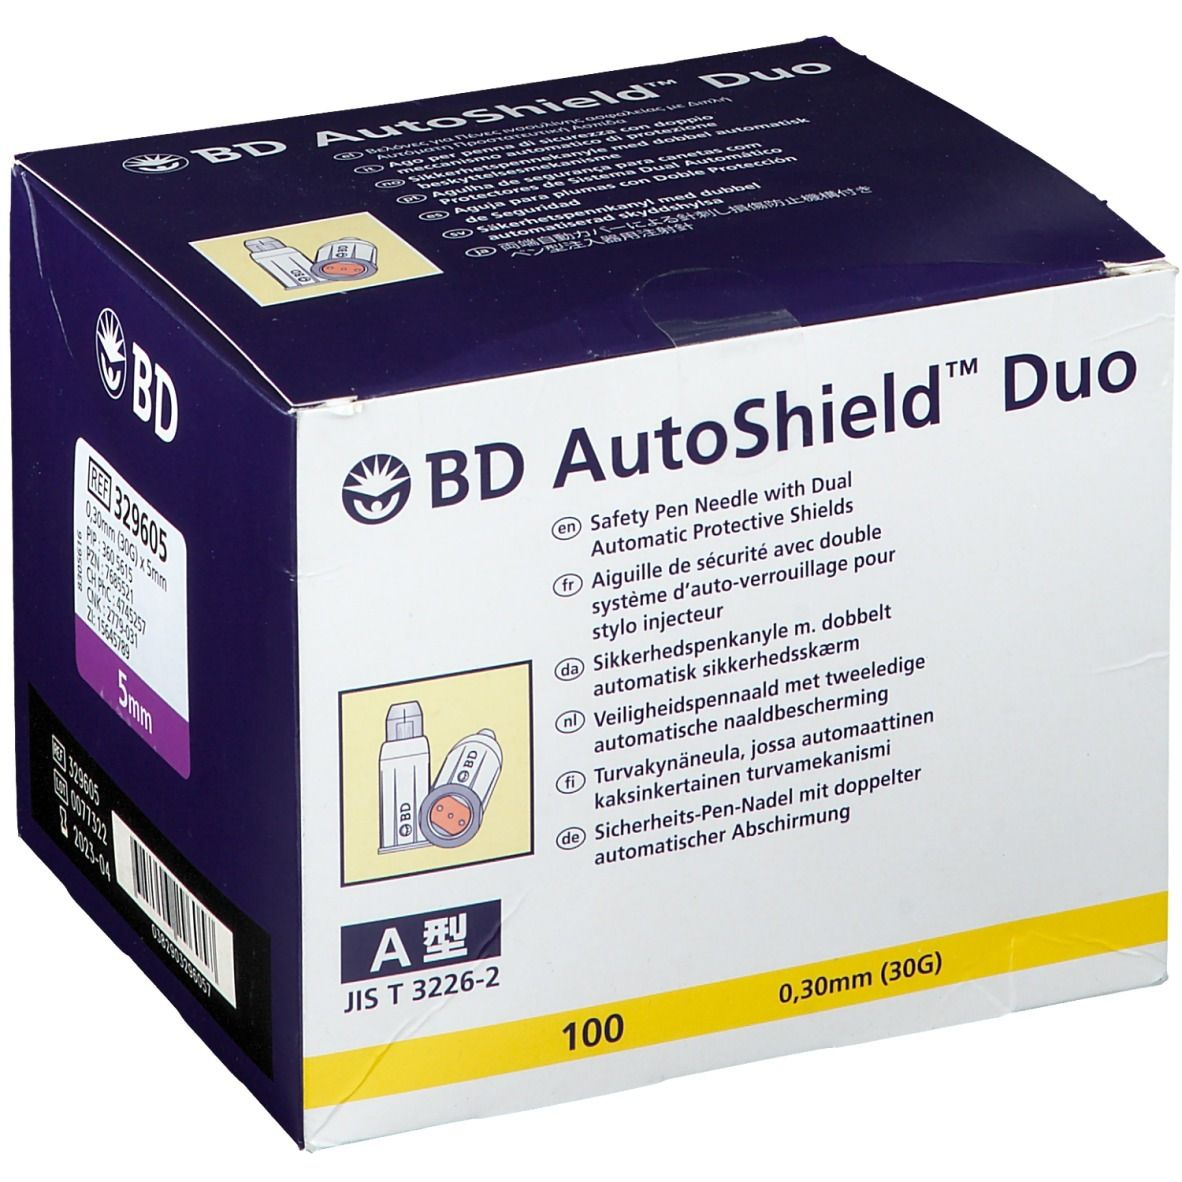 Image of BD AutoShield™ Duo 0,30 mm